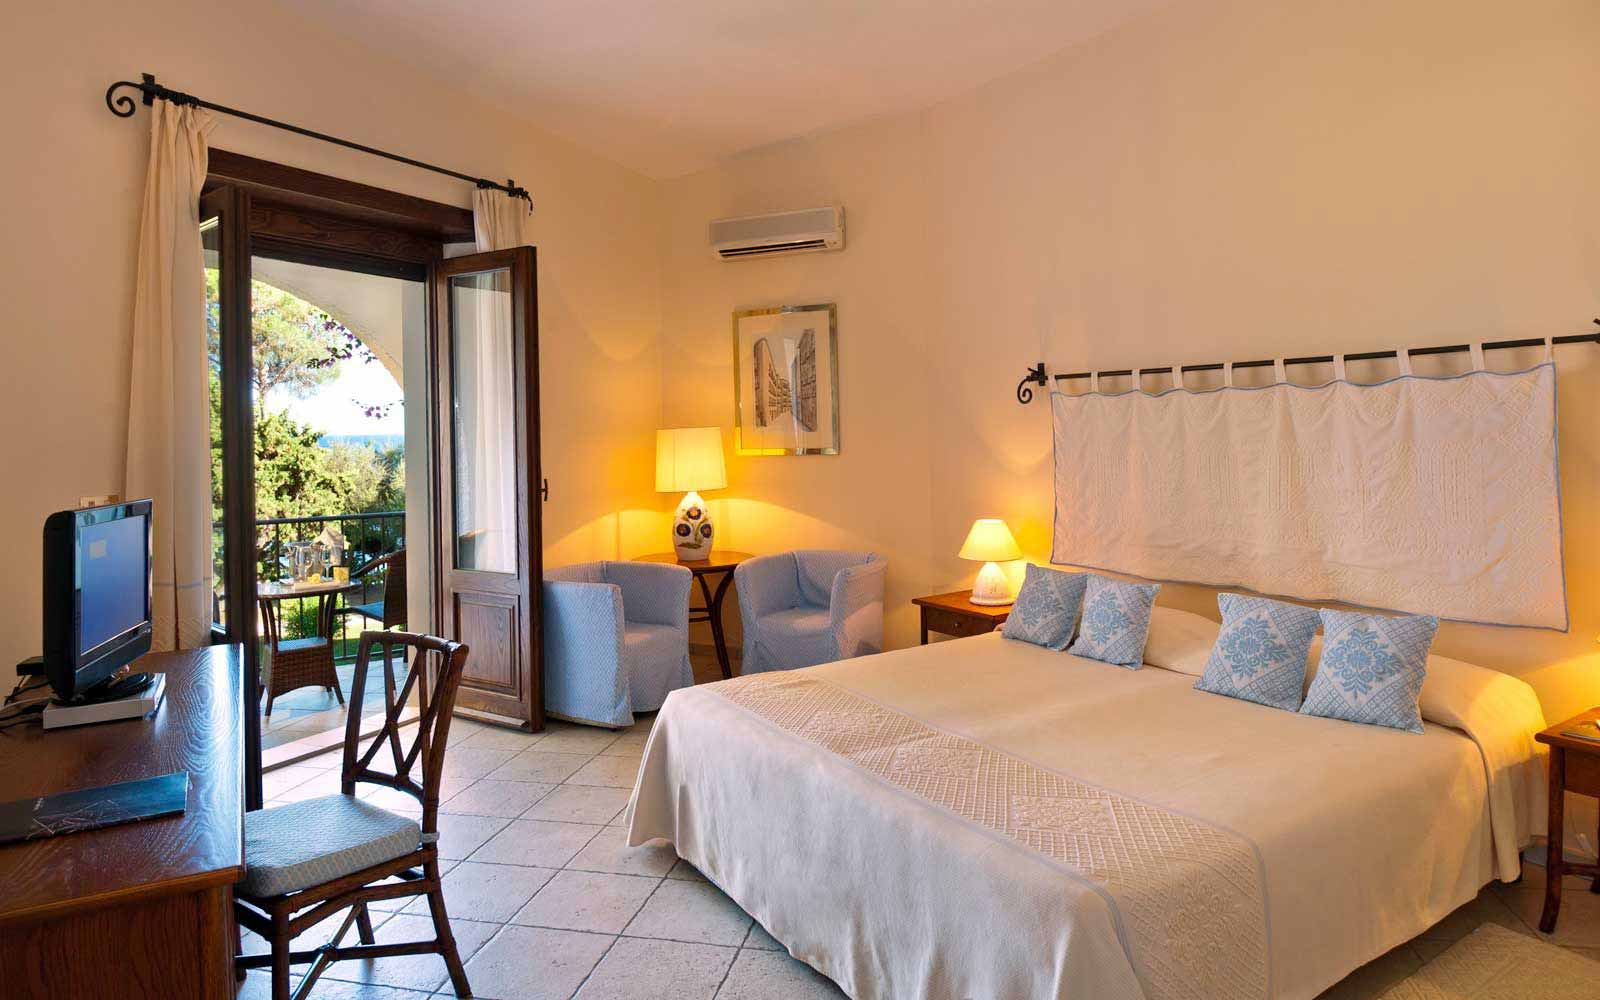 Deluxe seaside room at Is Morus Relais